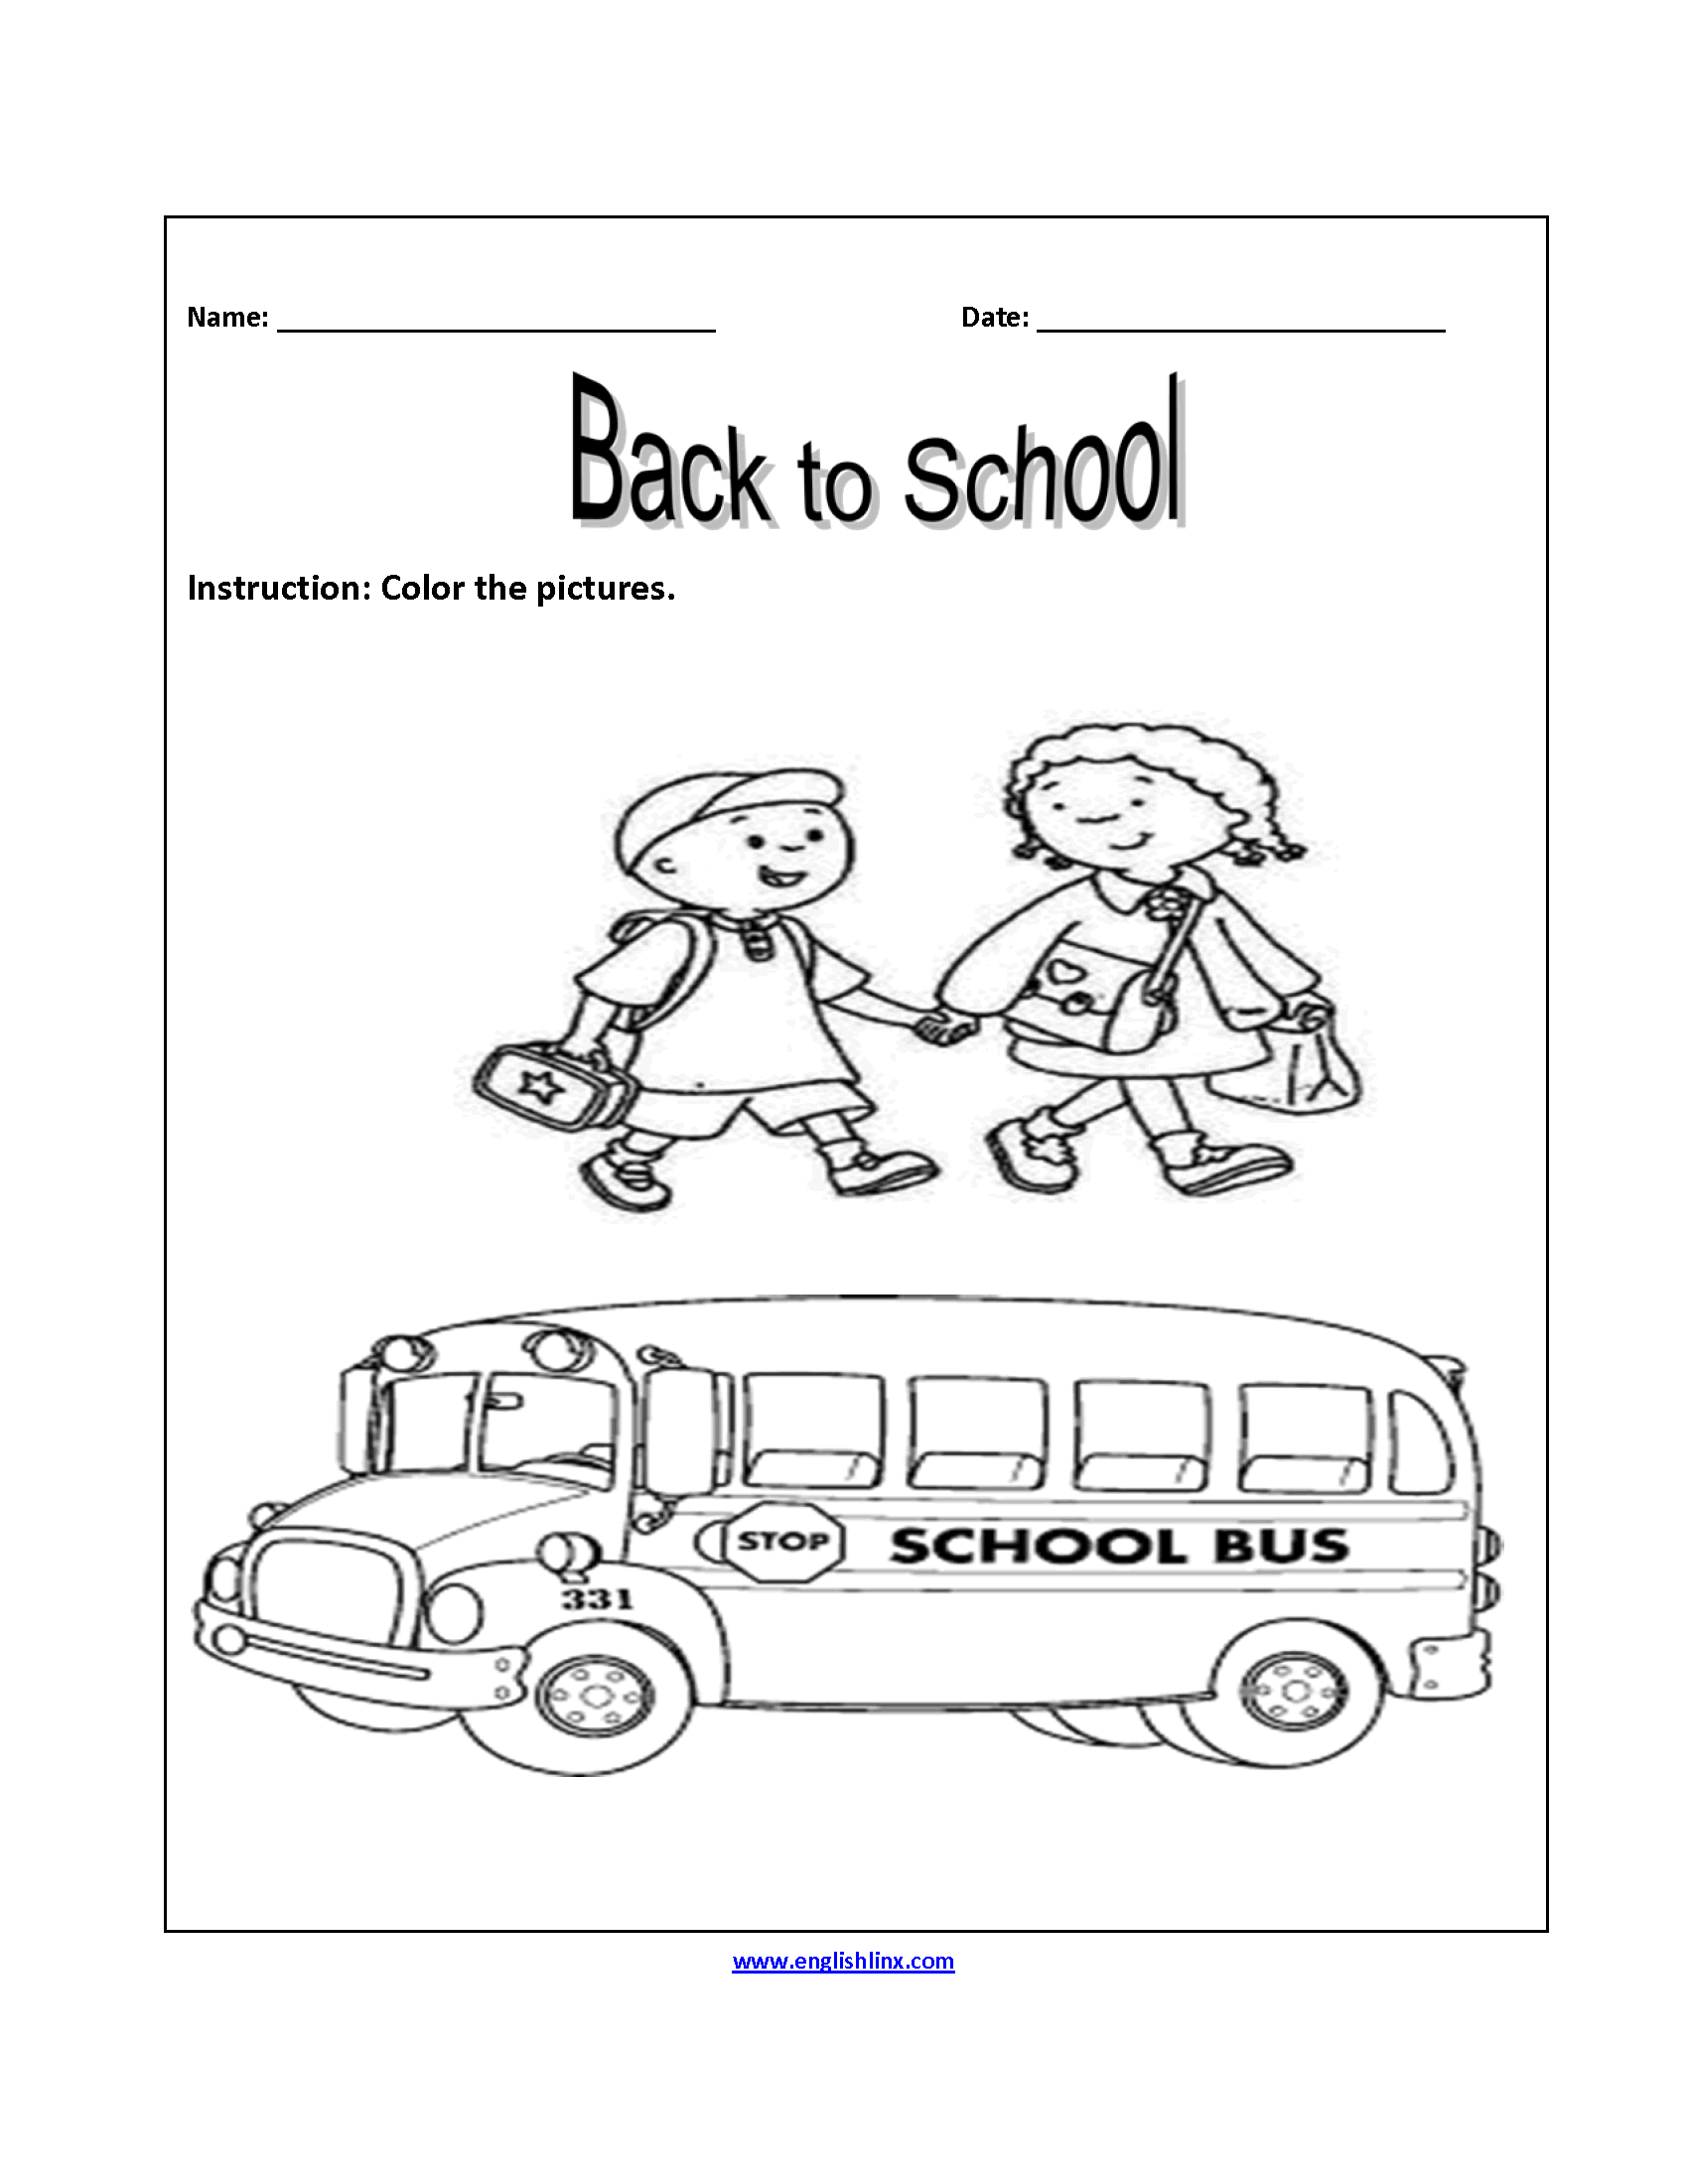 worksheet Free School Worksheets englishlinx com back to school worksheets worksheets